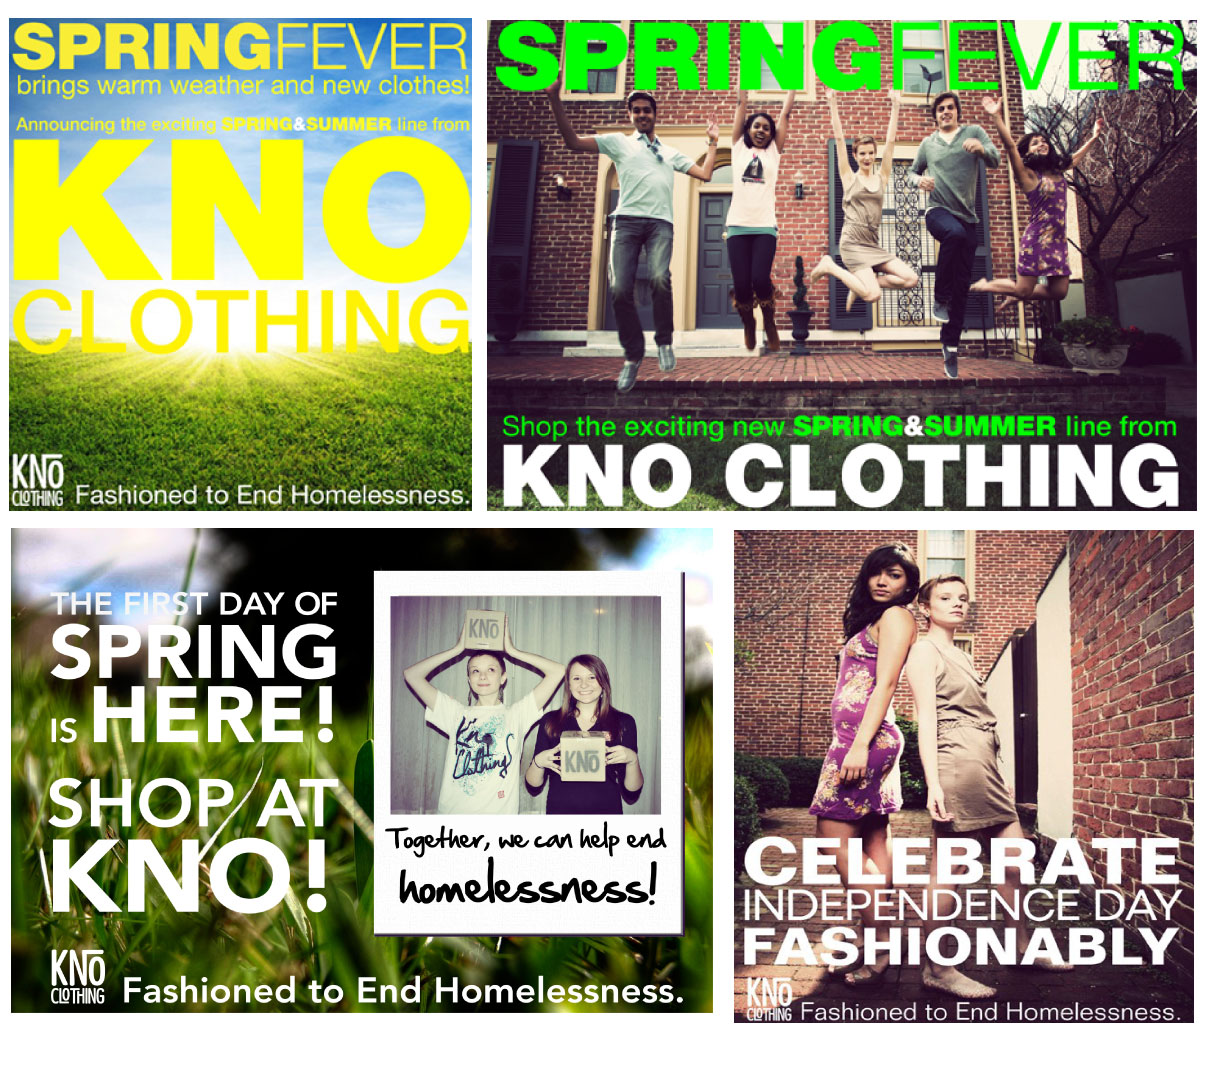 KNO Clothing Spring & Summer Line Advertisements